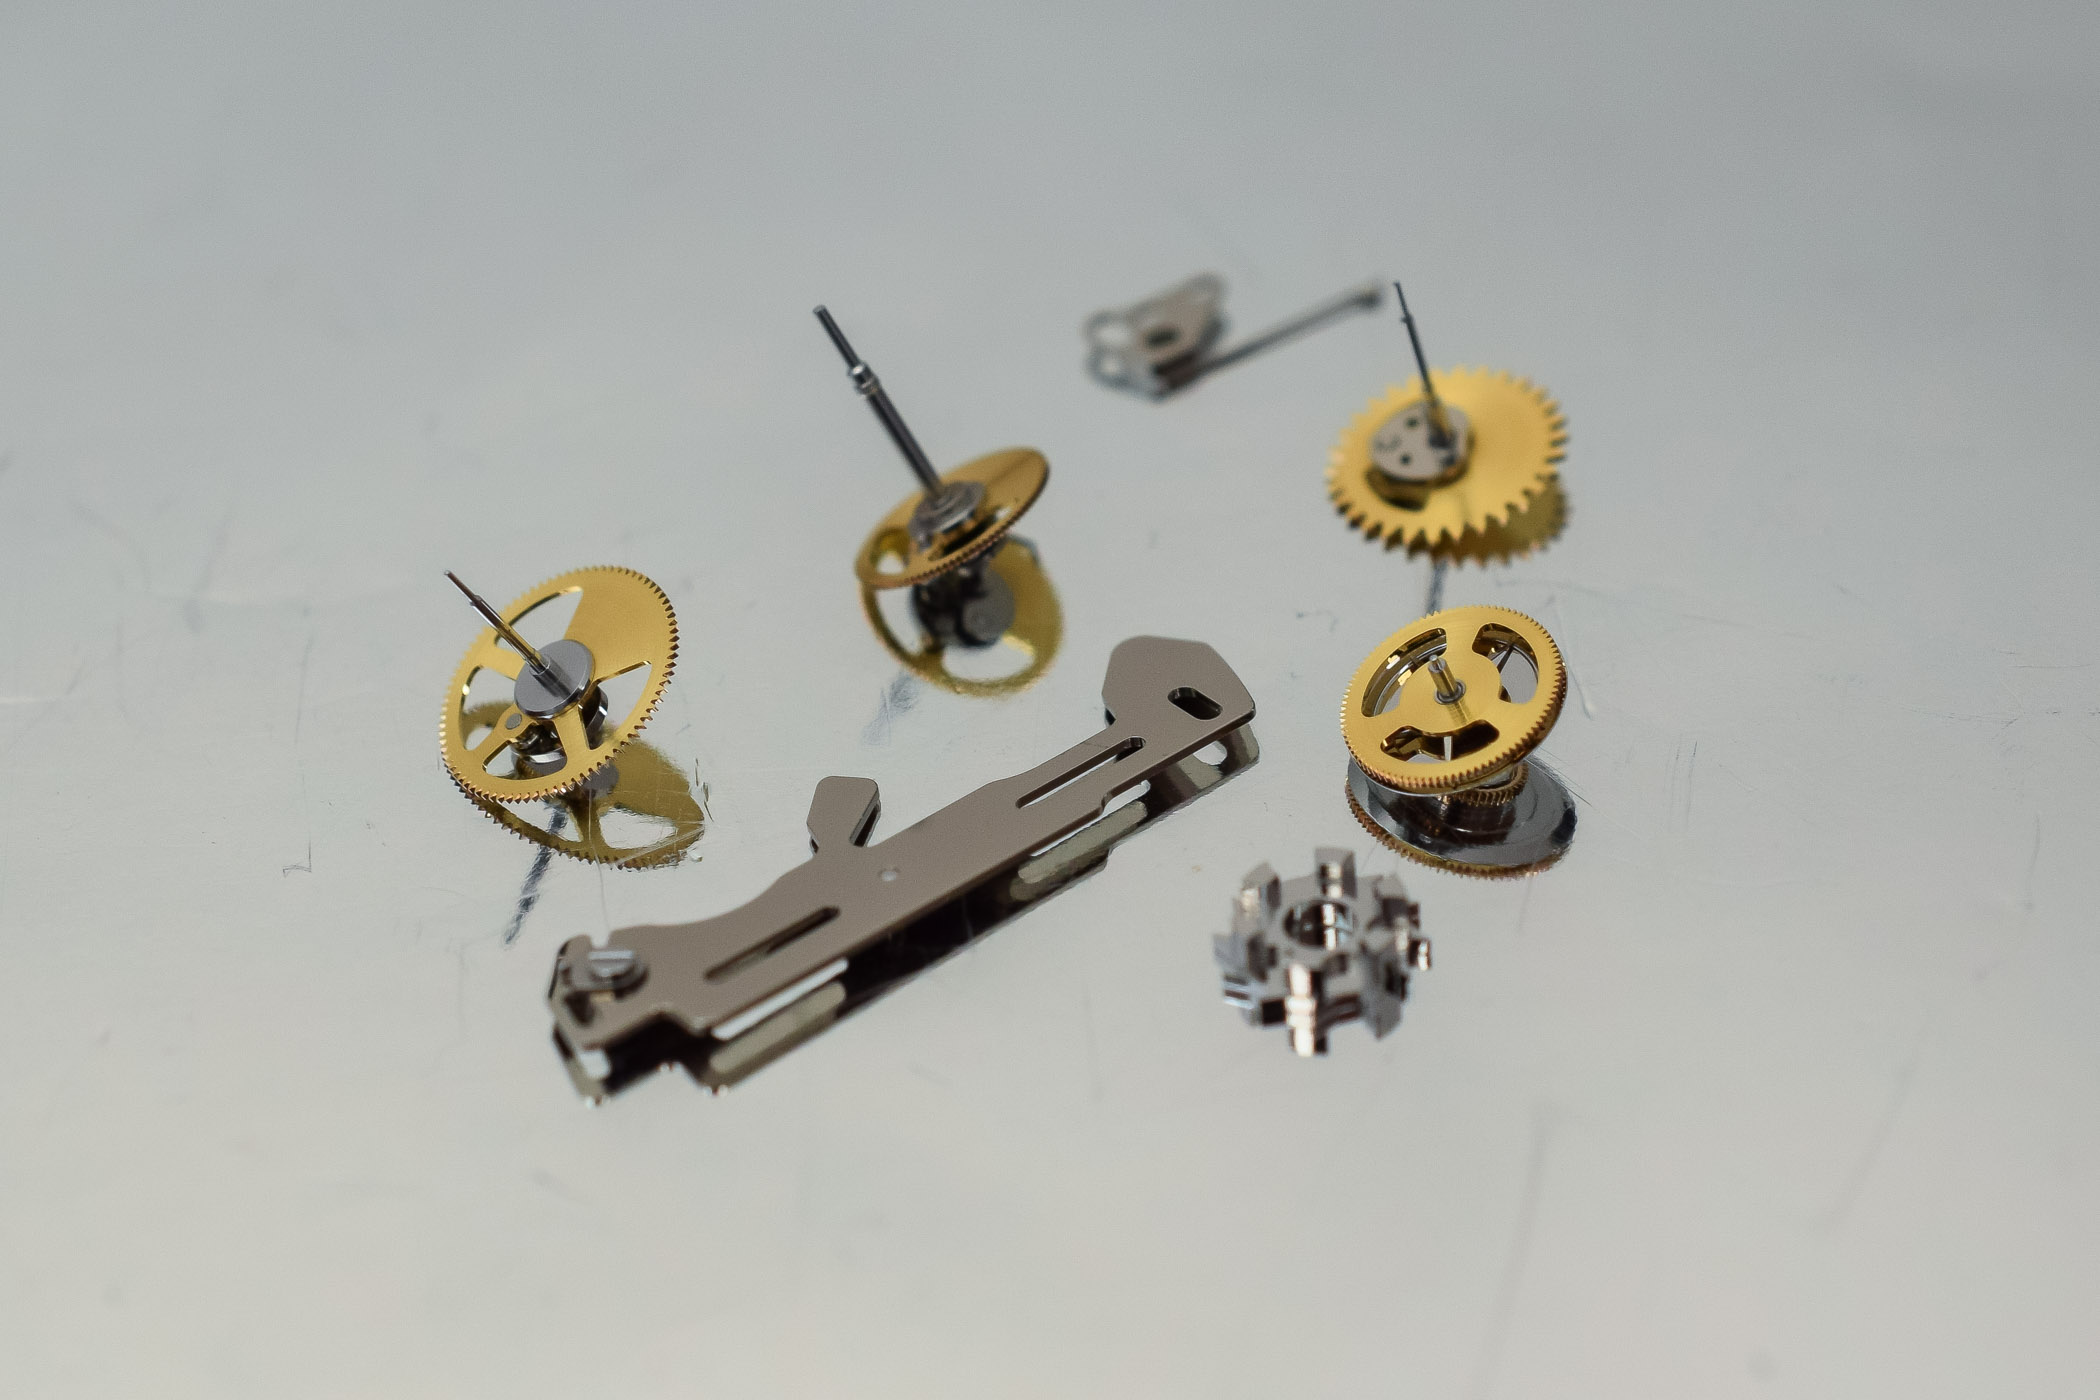 Vaucher integrated high-frequency chronograph Calibre Seed VMF 6710 - 2